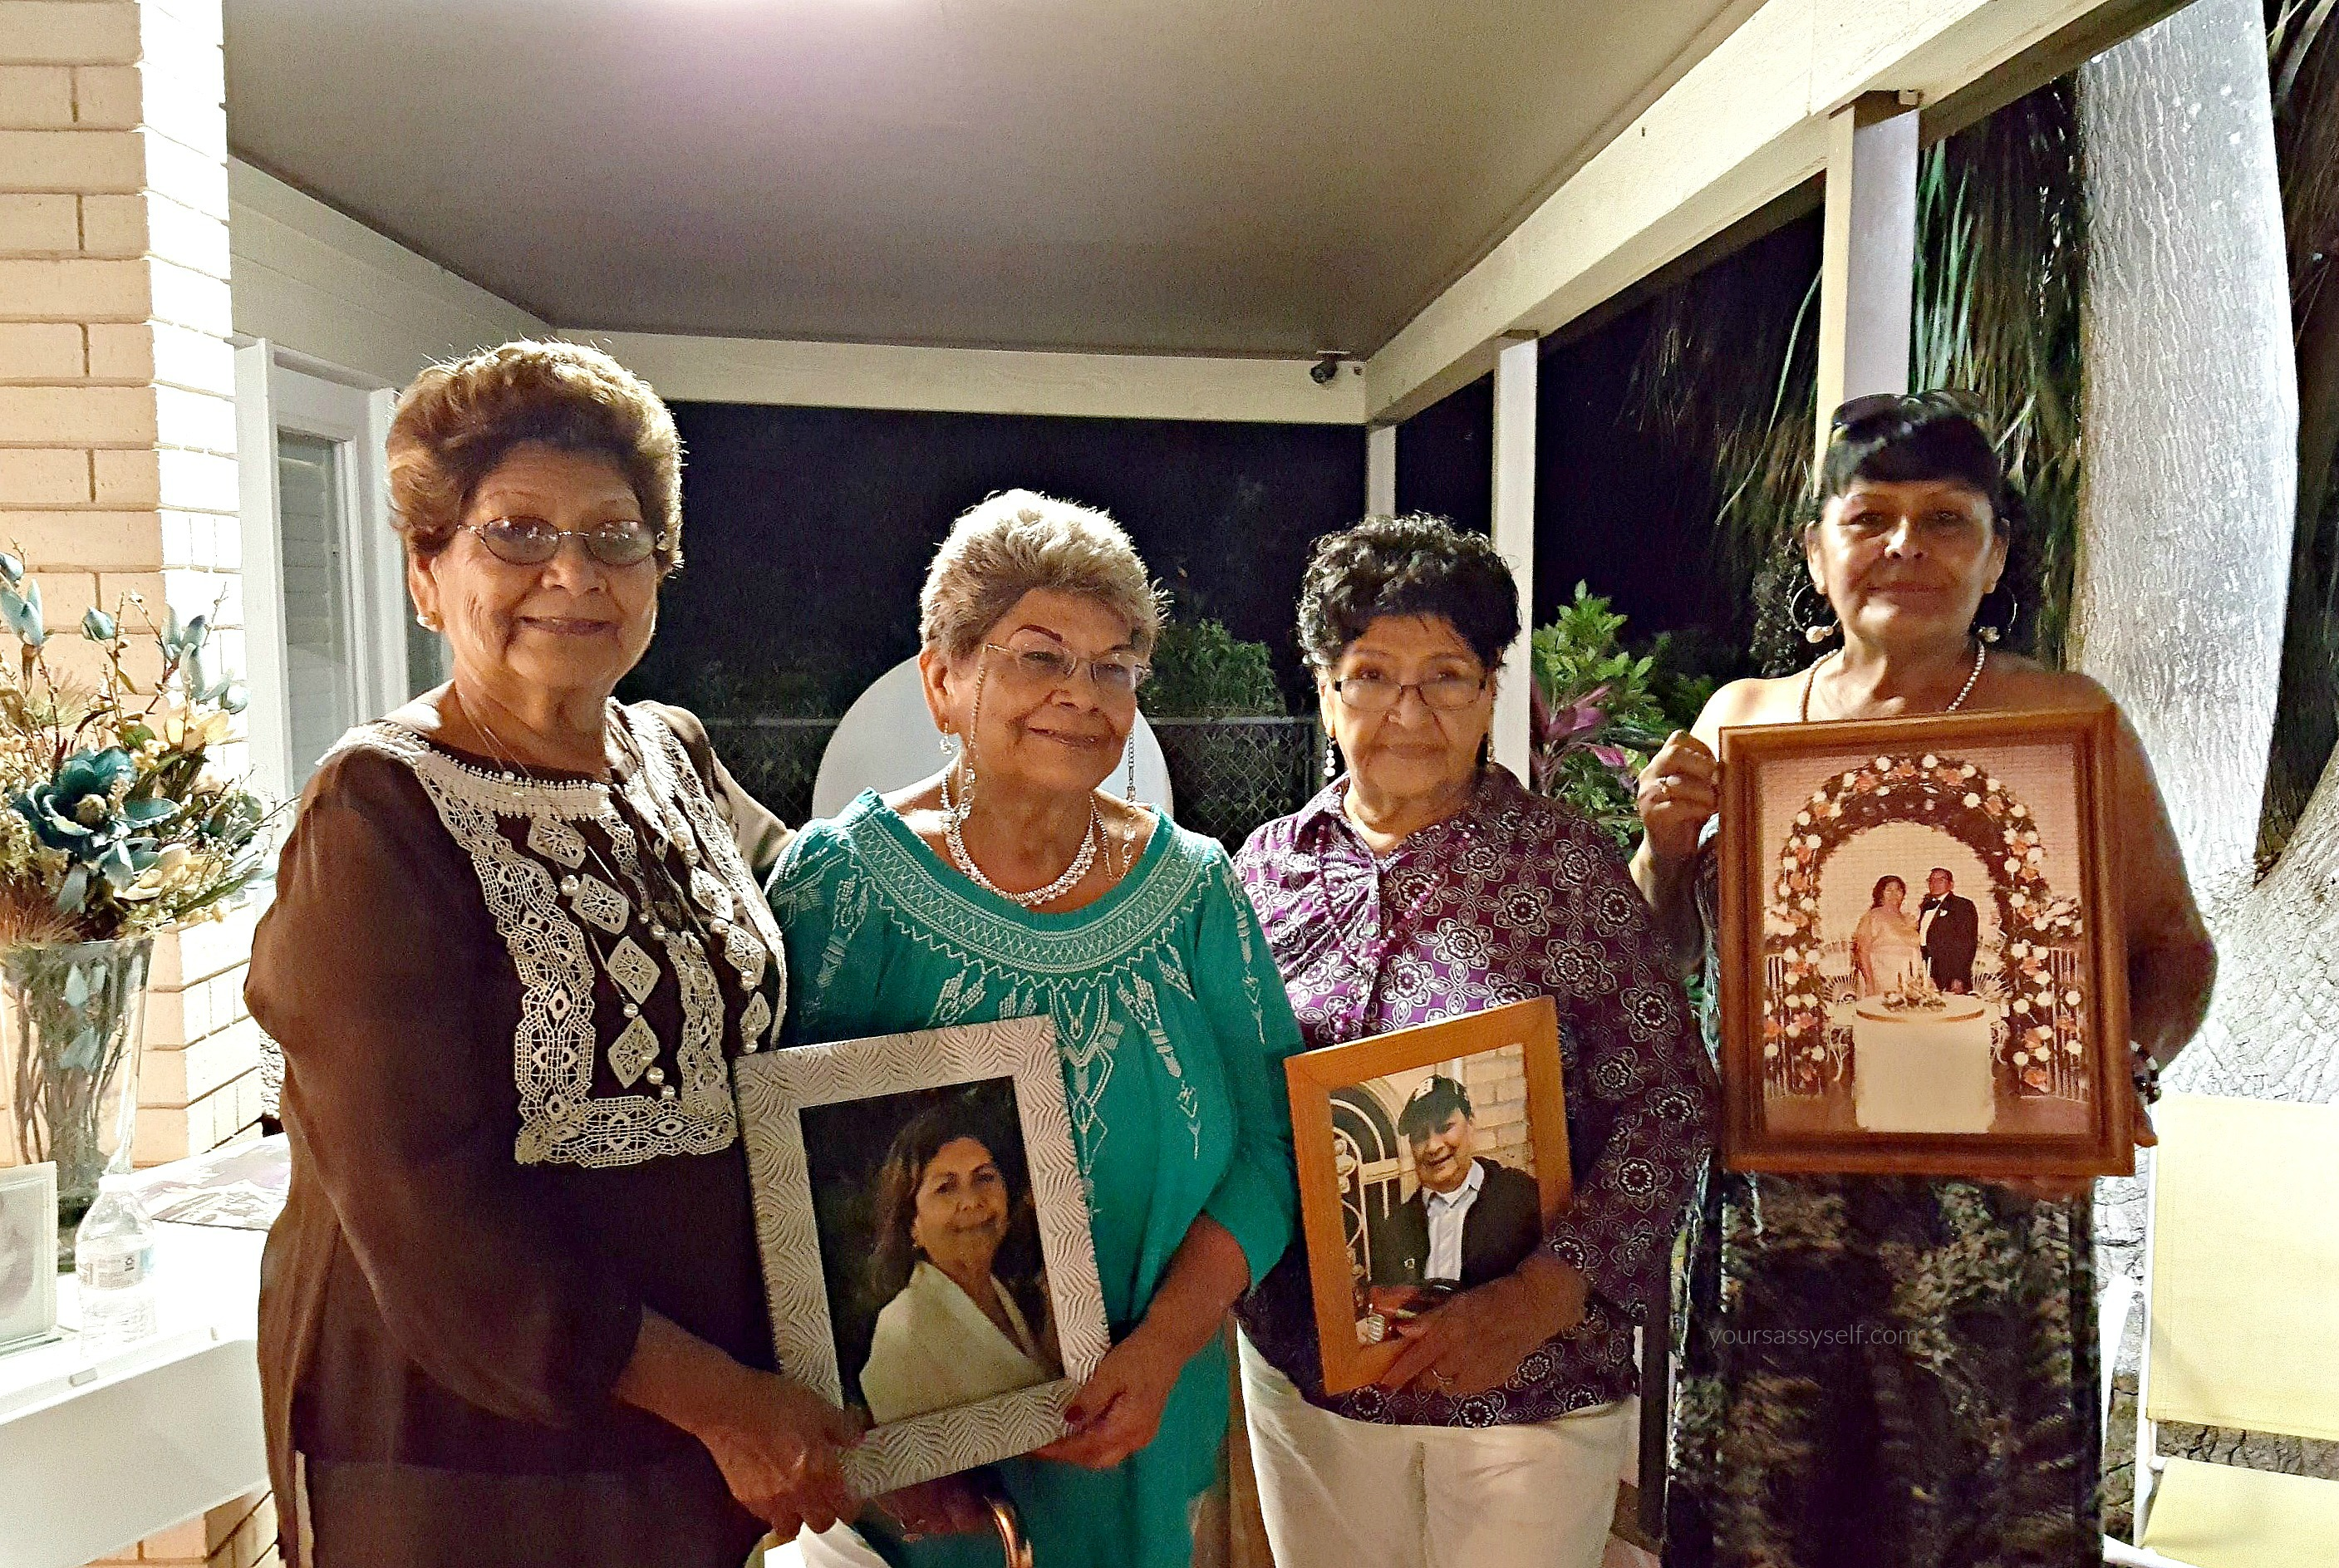 Sanchez Family holding Pics of Deceased Loved Ones - yoursassyself.com